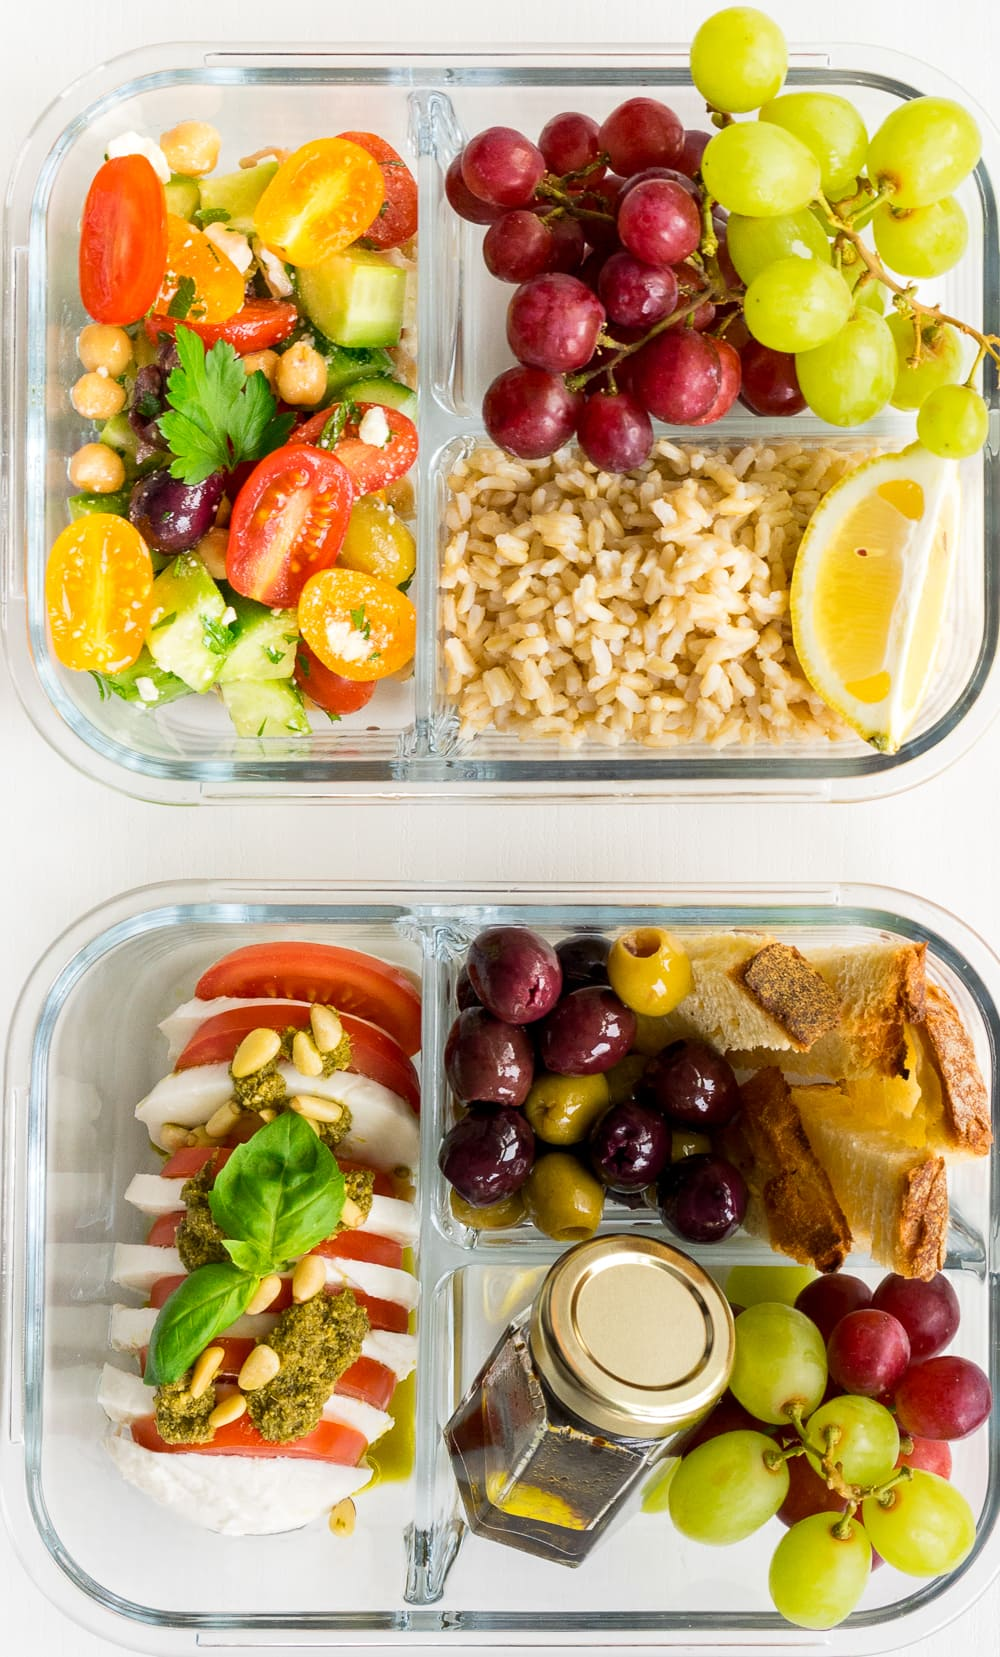 Lunch In A Box 5 Awesome Lunch Box Ideas For Adults Perfect For Work